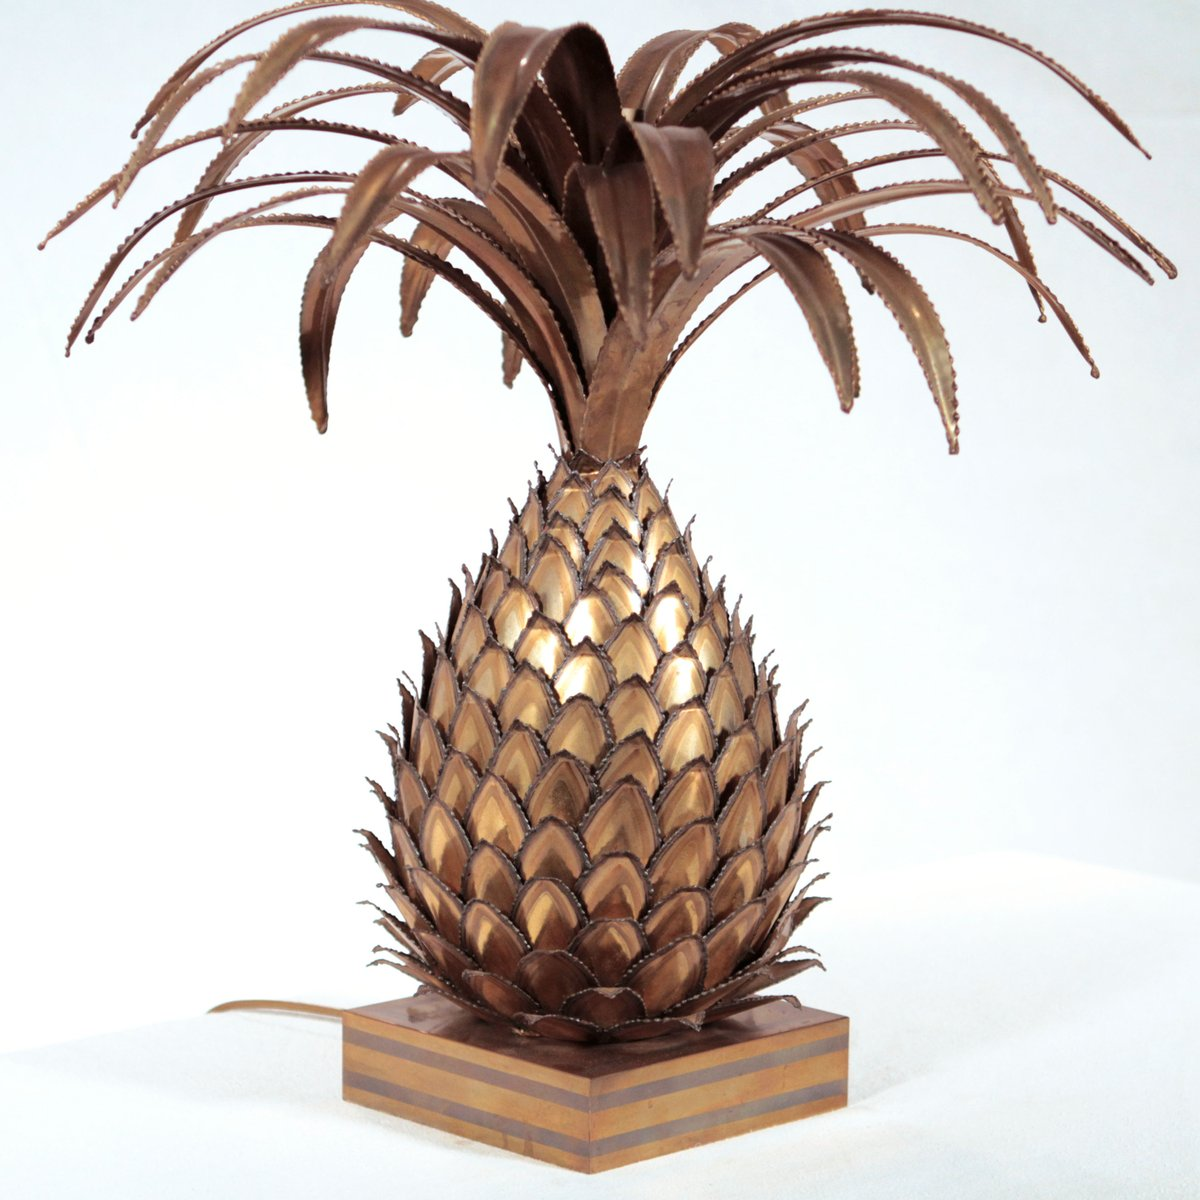 Brass Pineapple Table Lamp Brass Pineapple Table Lamp from Maison Jansen for sale at Pamono